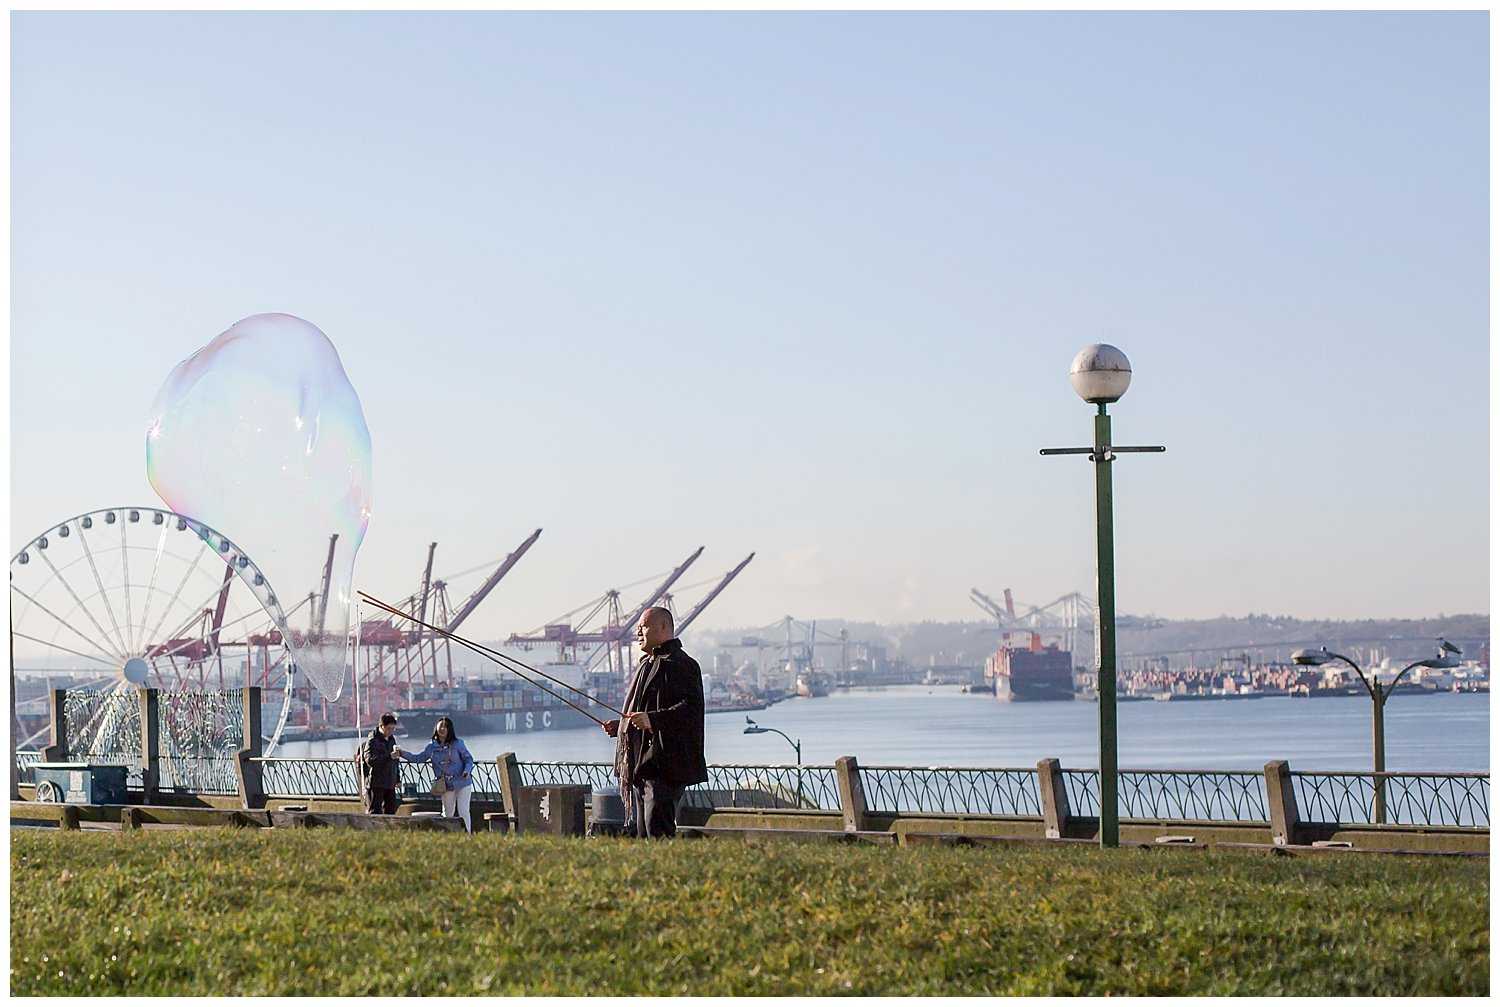 Bubble art in Seattle Washington with the Great Wheel in the background